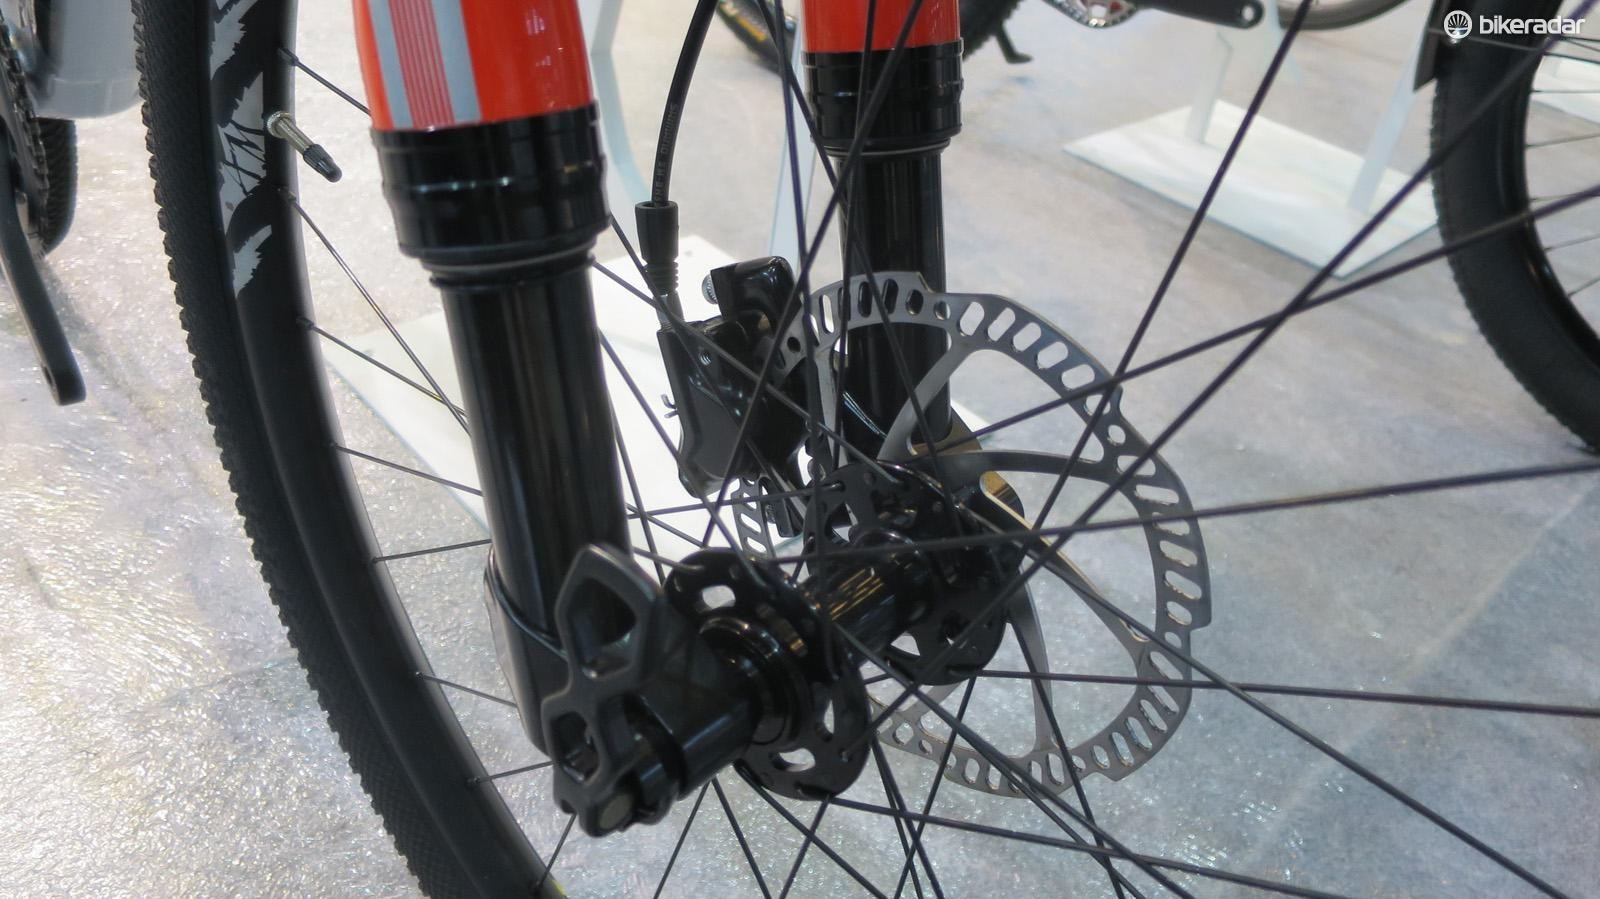 Big MTB style 15mm thru' axle up front